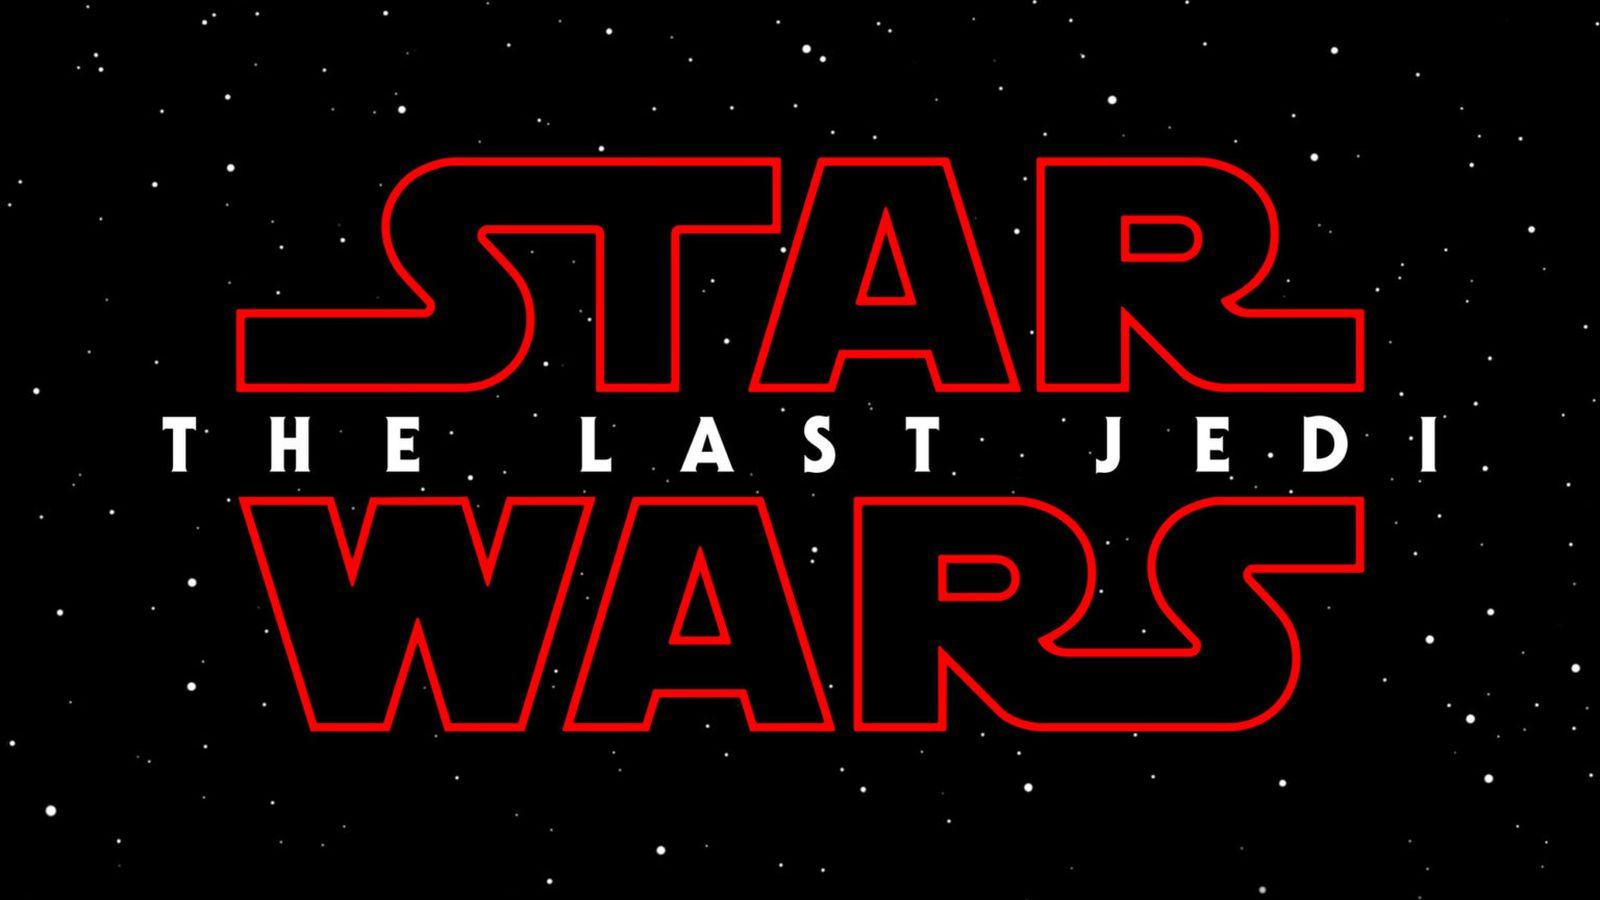 Star Wars: Episode VIII will be titled The Last Jedi